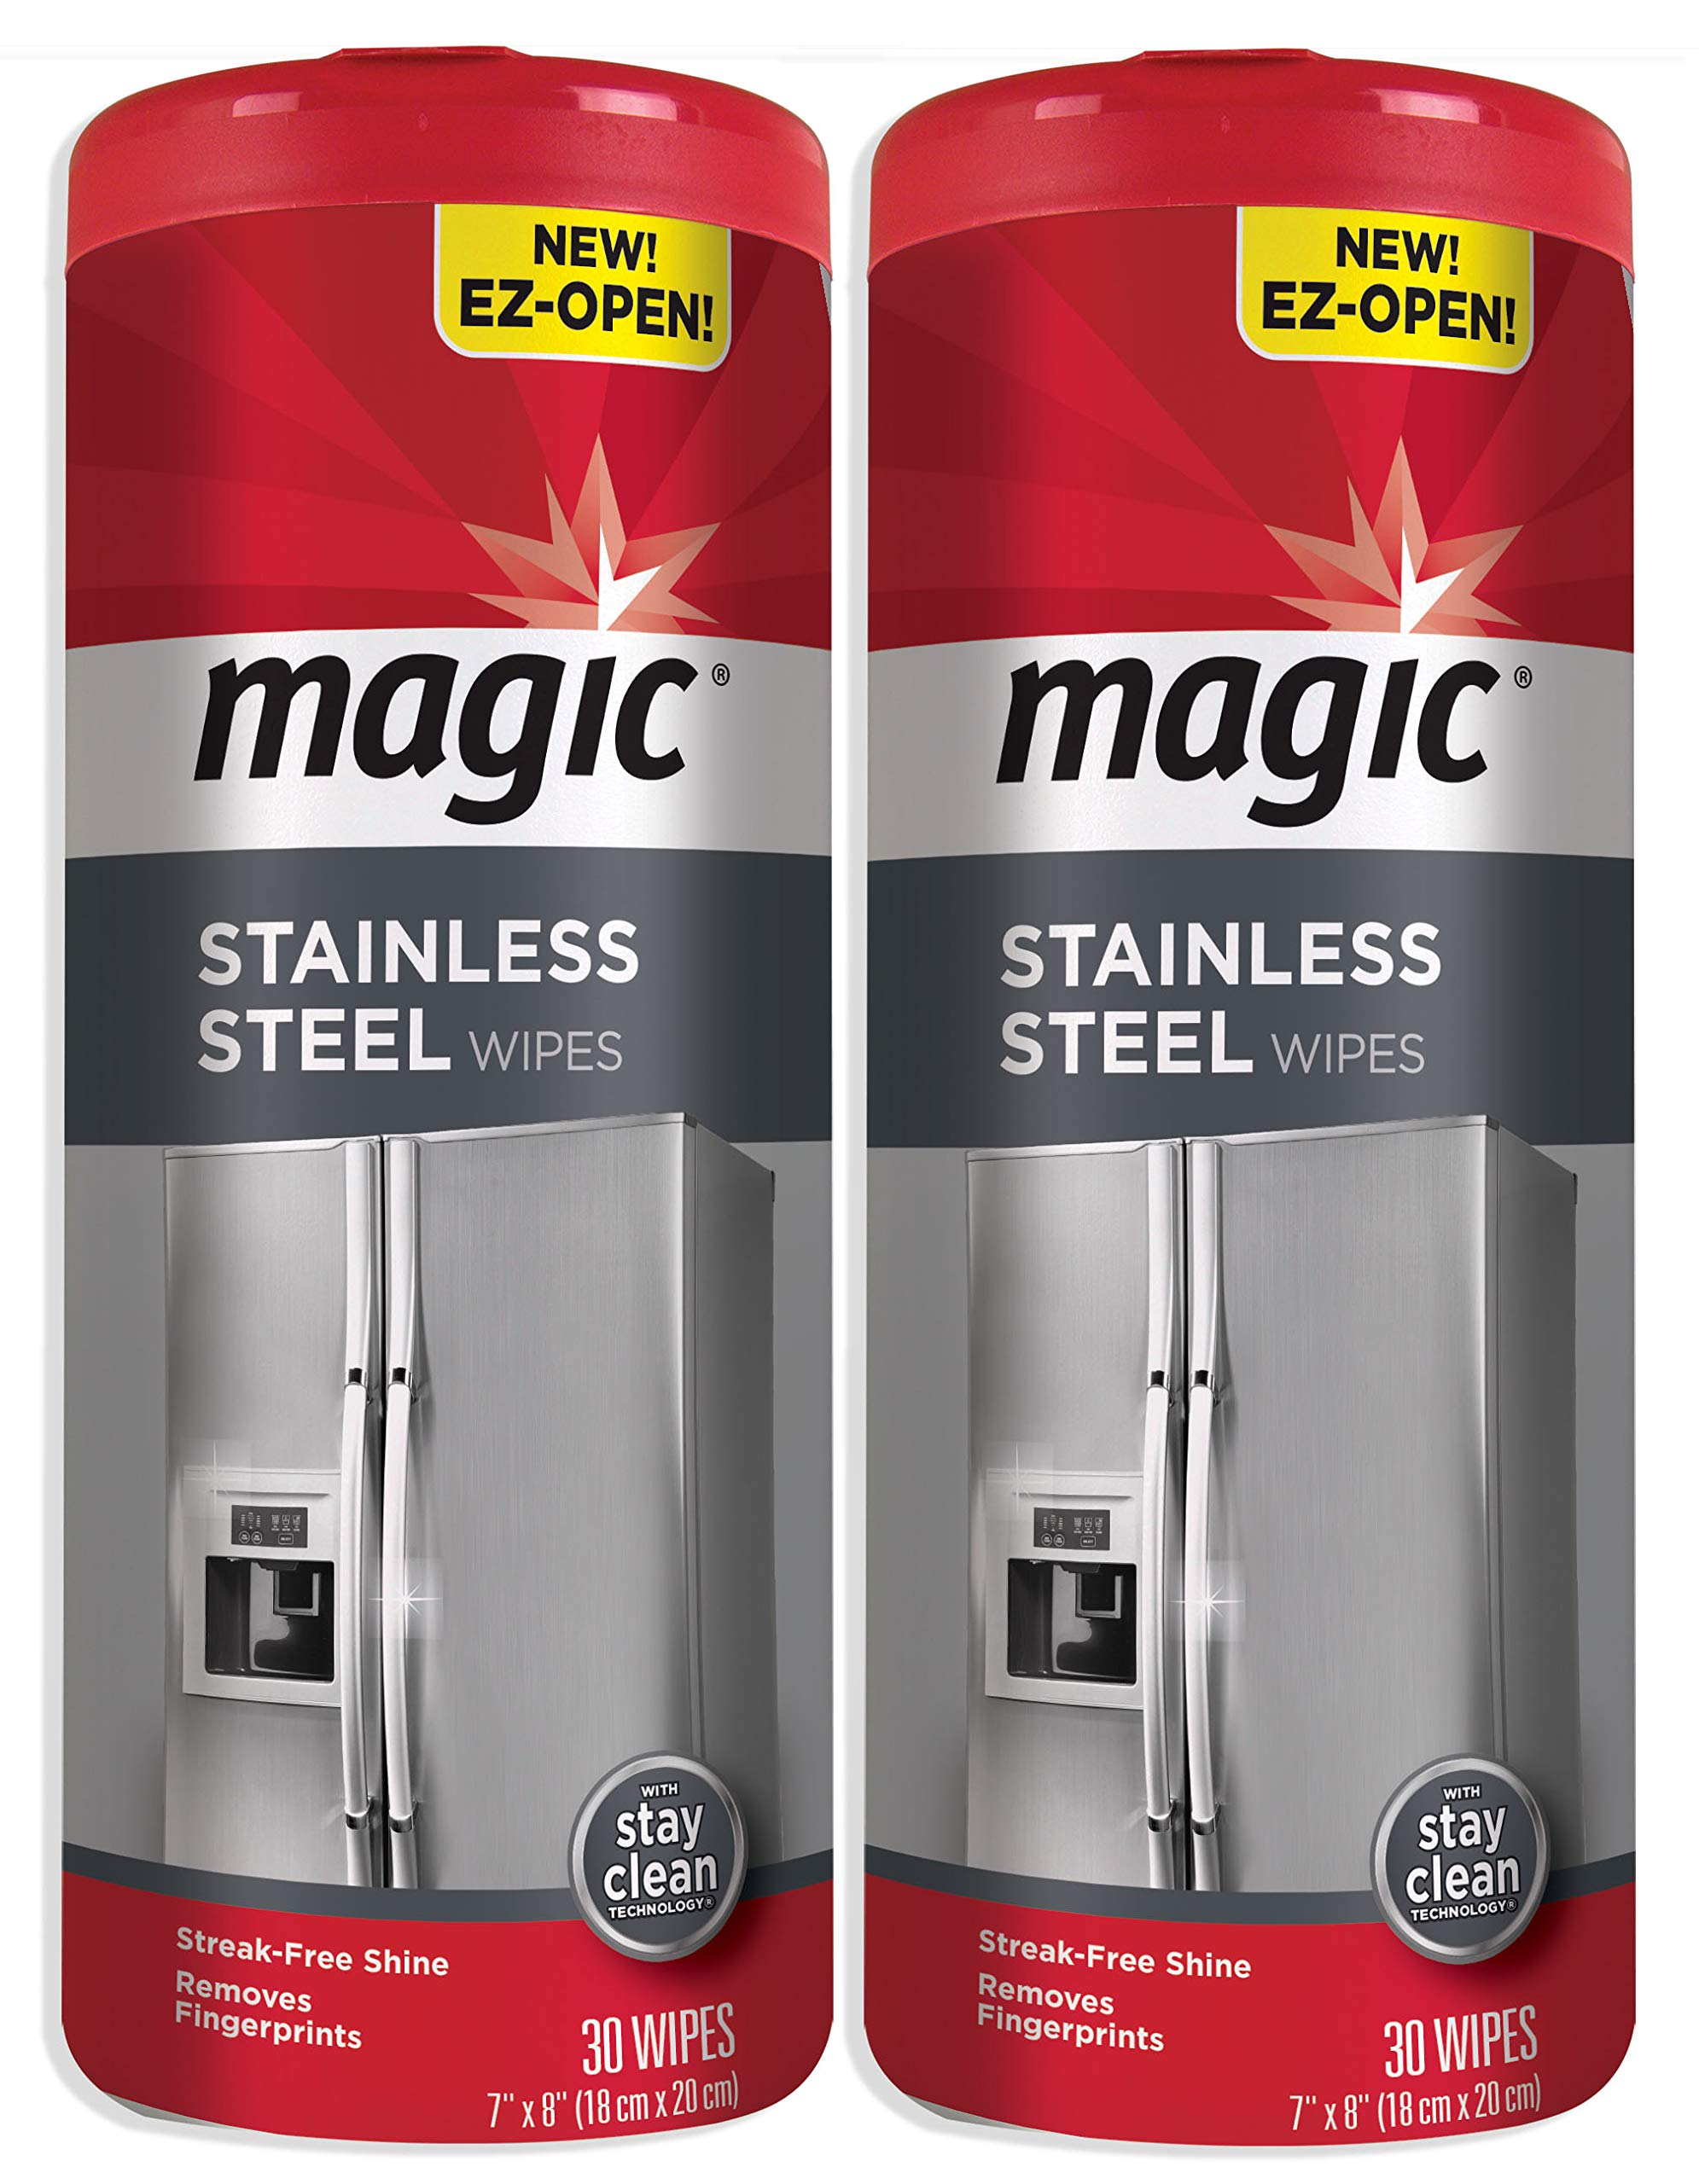 Magic Stainless Steel Wipes (2 Pack) Removes Fingerprints, Residue, Water Marks and Grease from Appliances - Works Great on Refrigerators, Dishwashers, Ovens - 30 Count by Magic